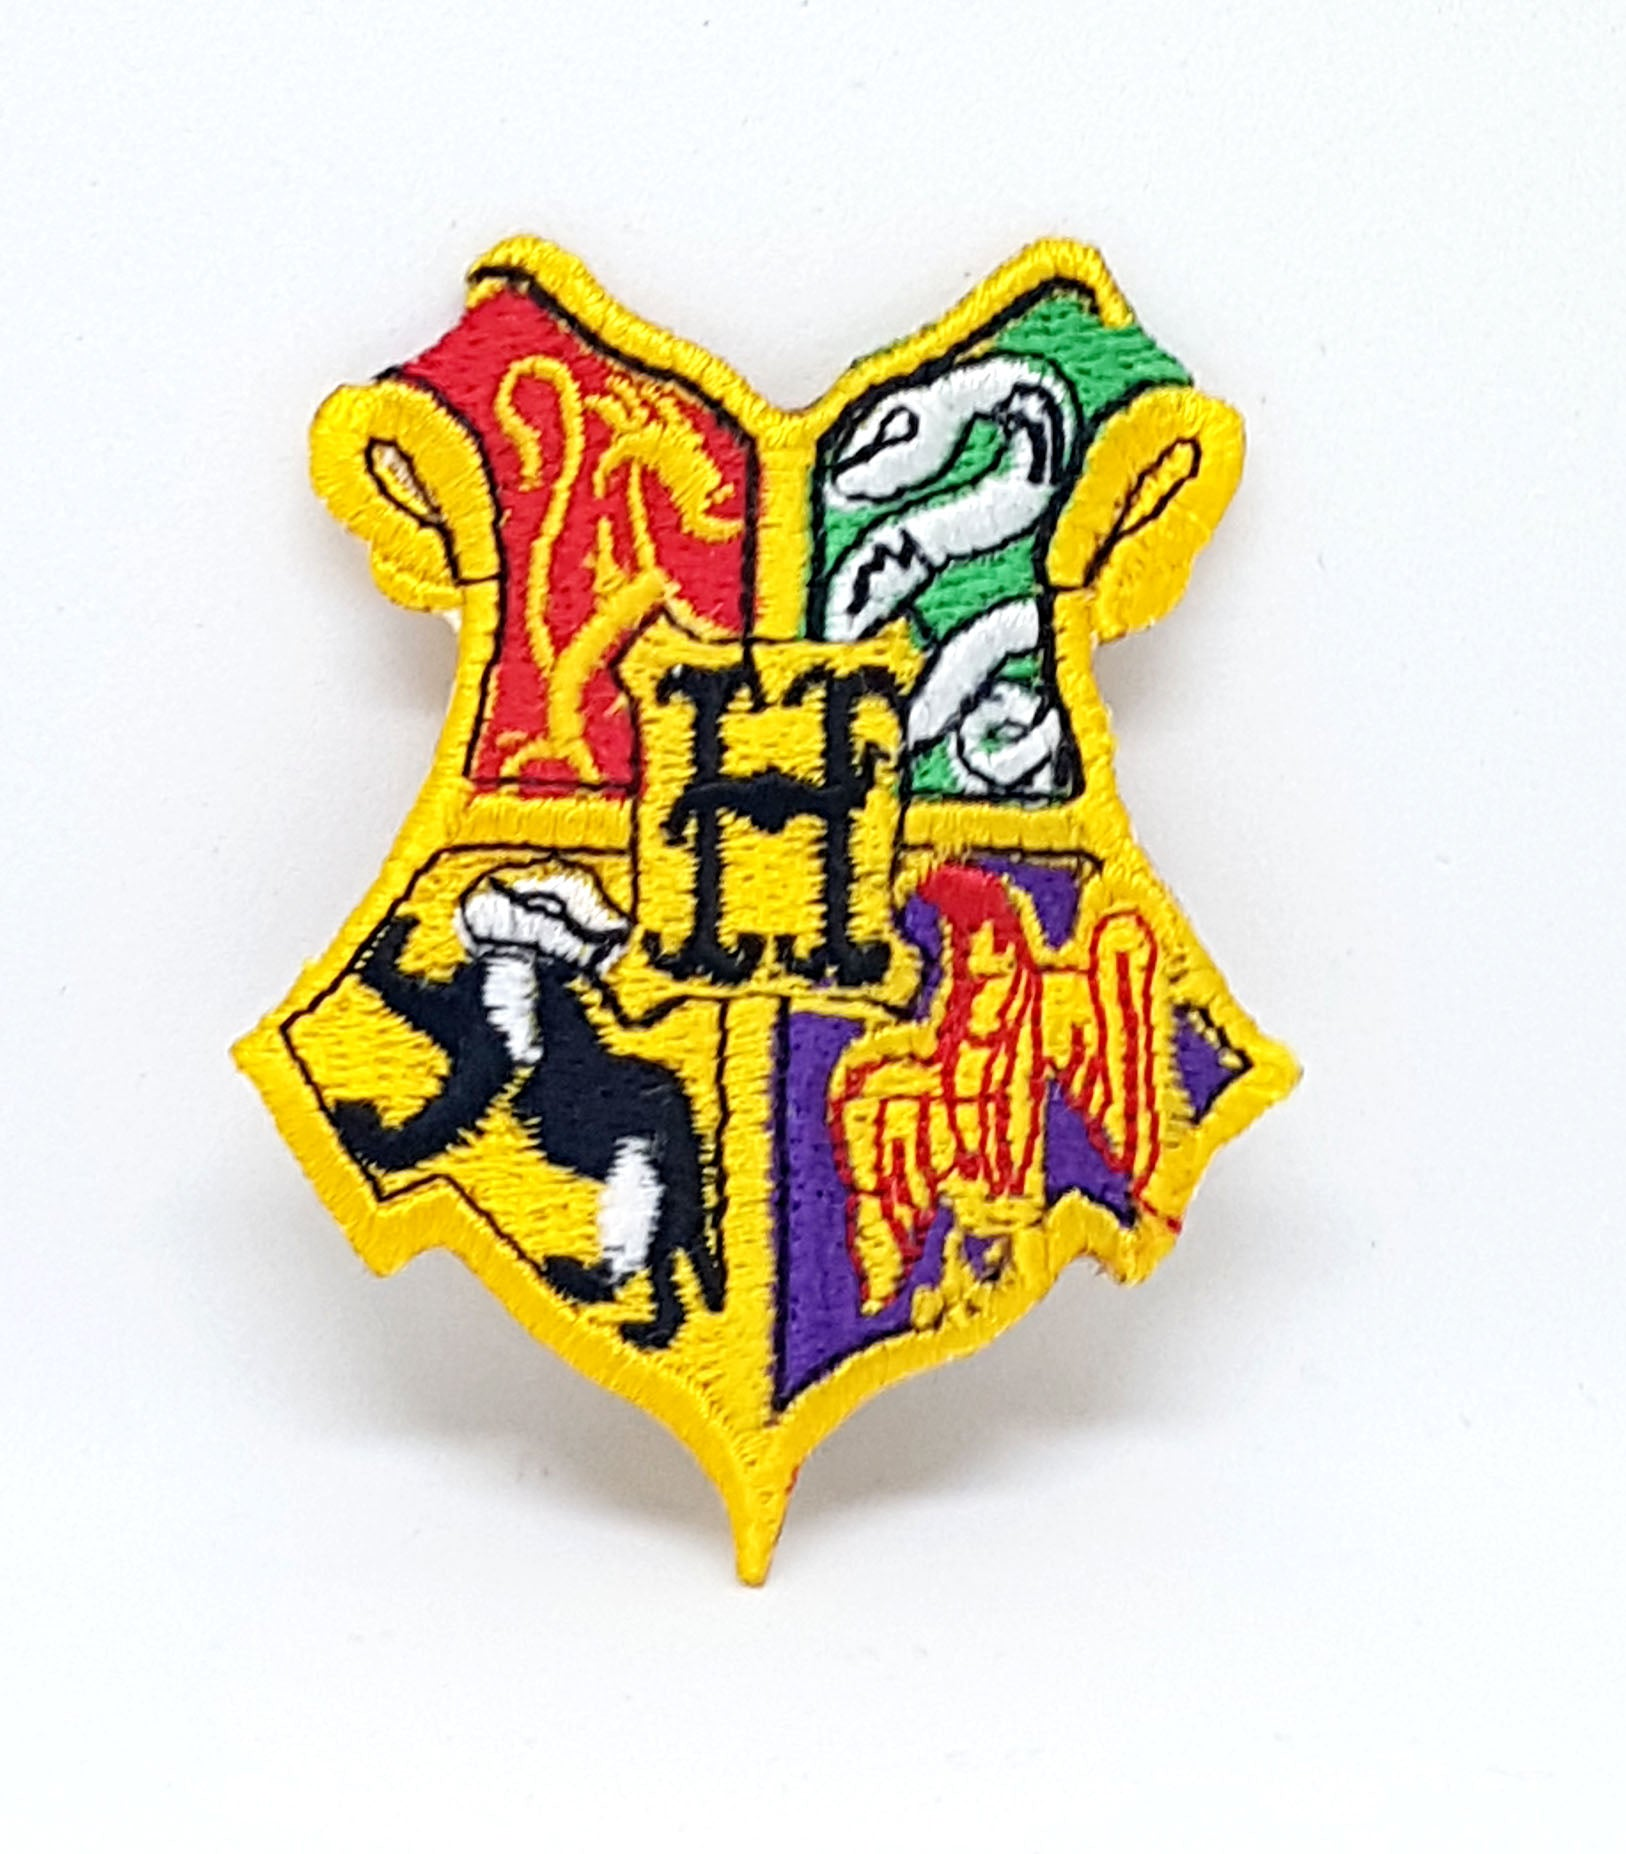 Harry Potter Hogwarts Yellow Iron Sew on Embroidered Patch - Patches-Badges